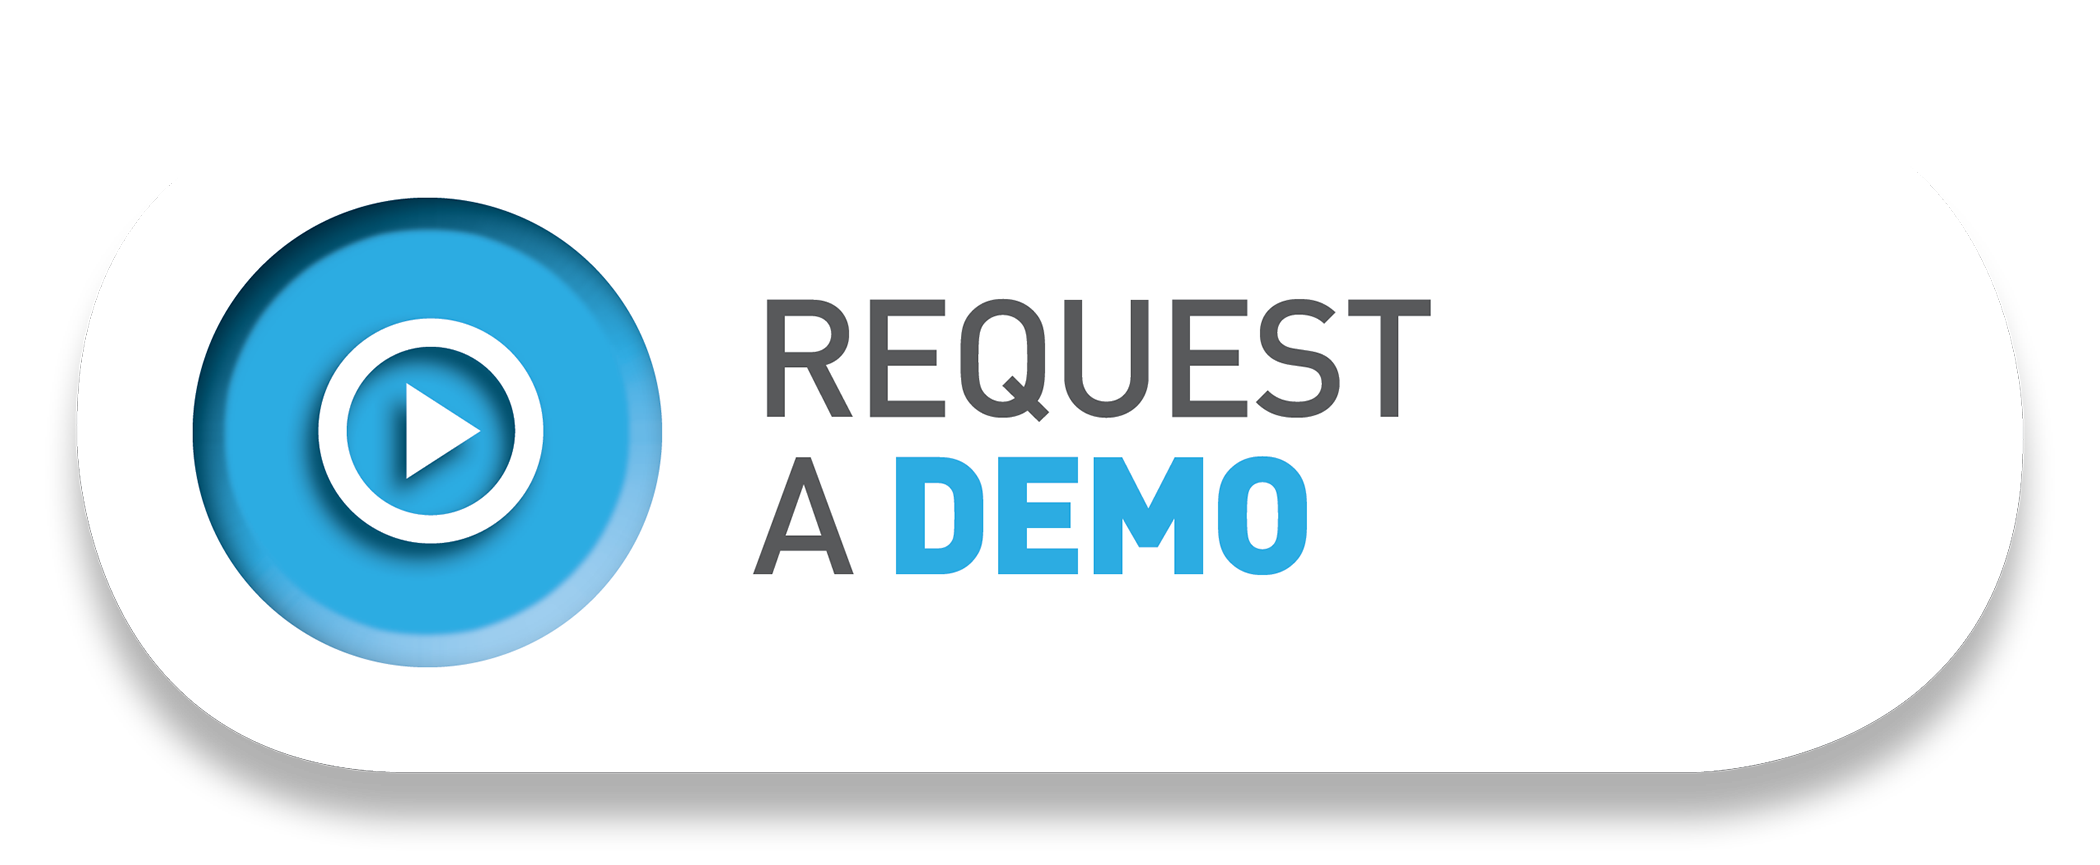 request a product demonstration demo test trial